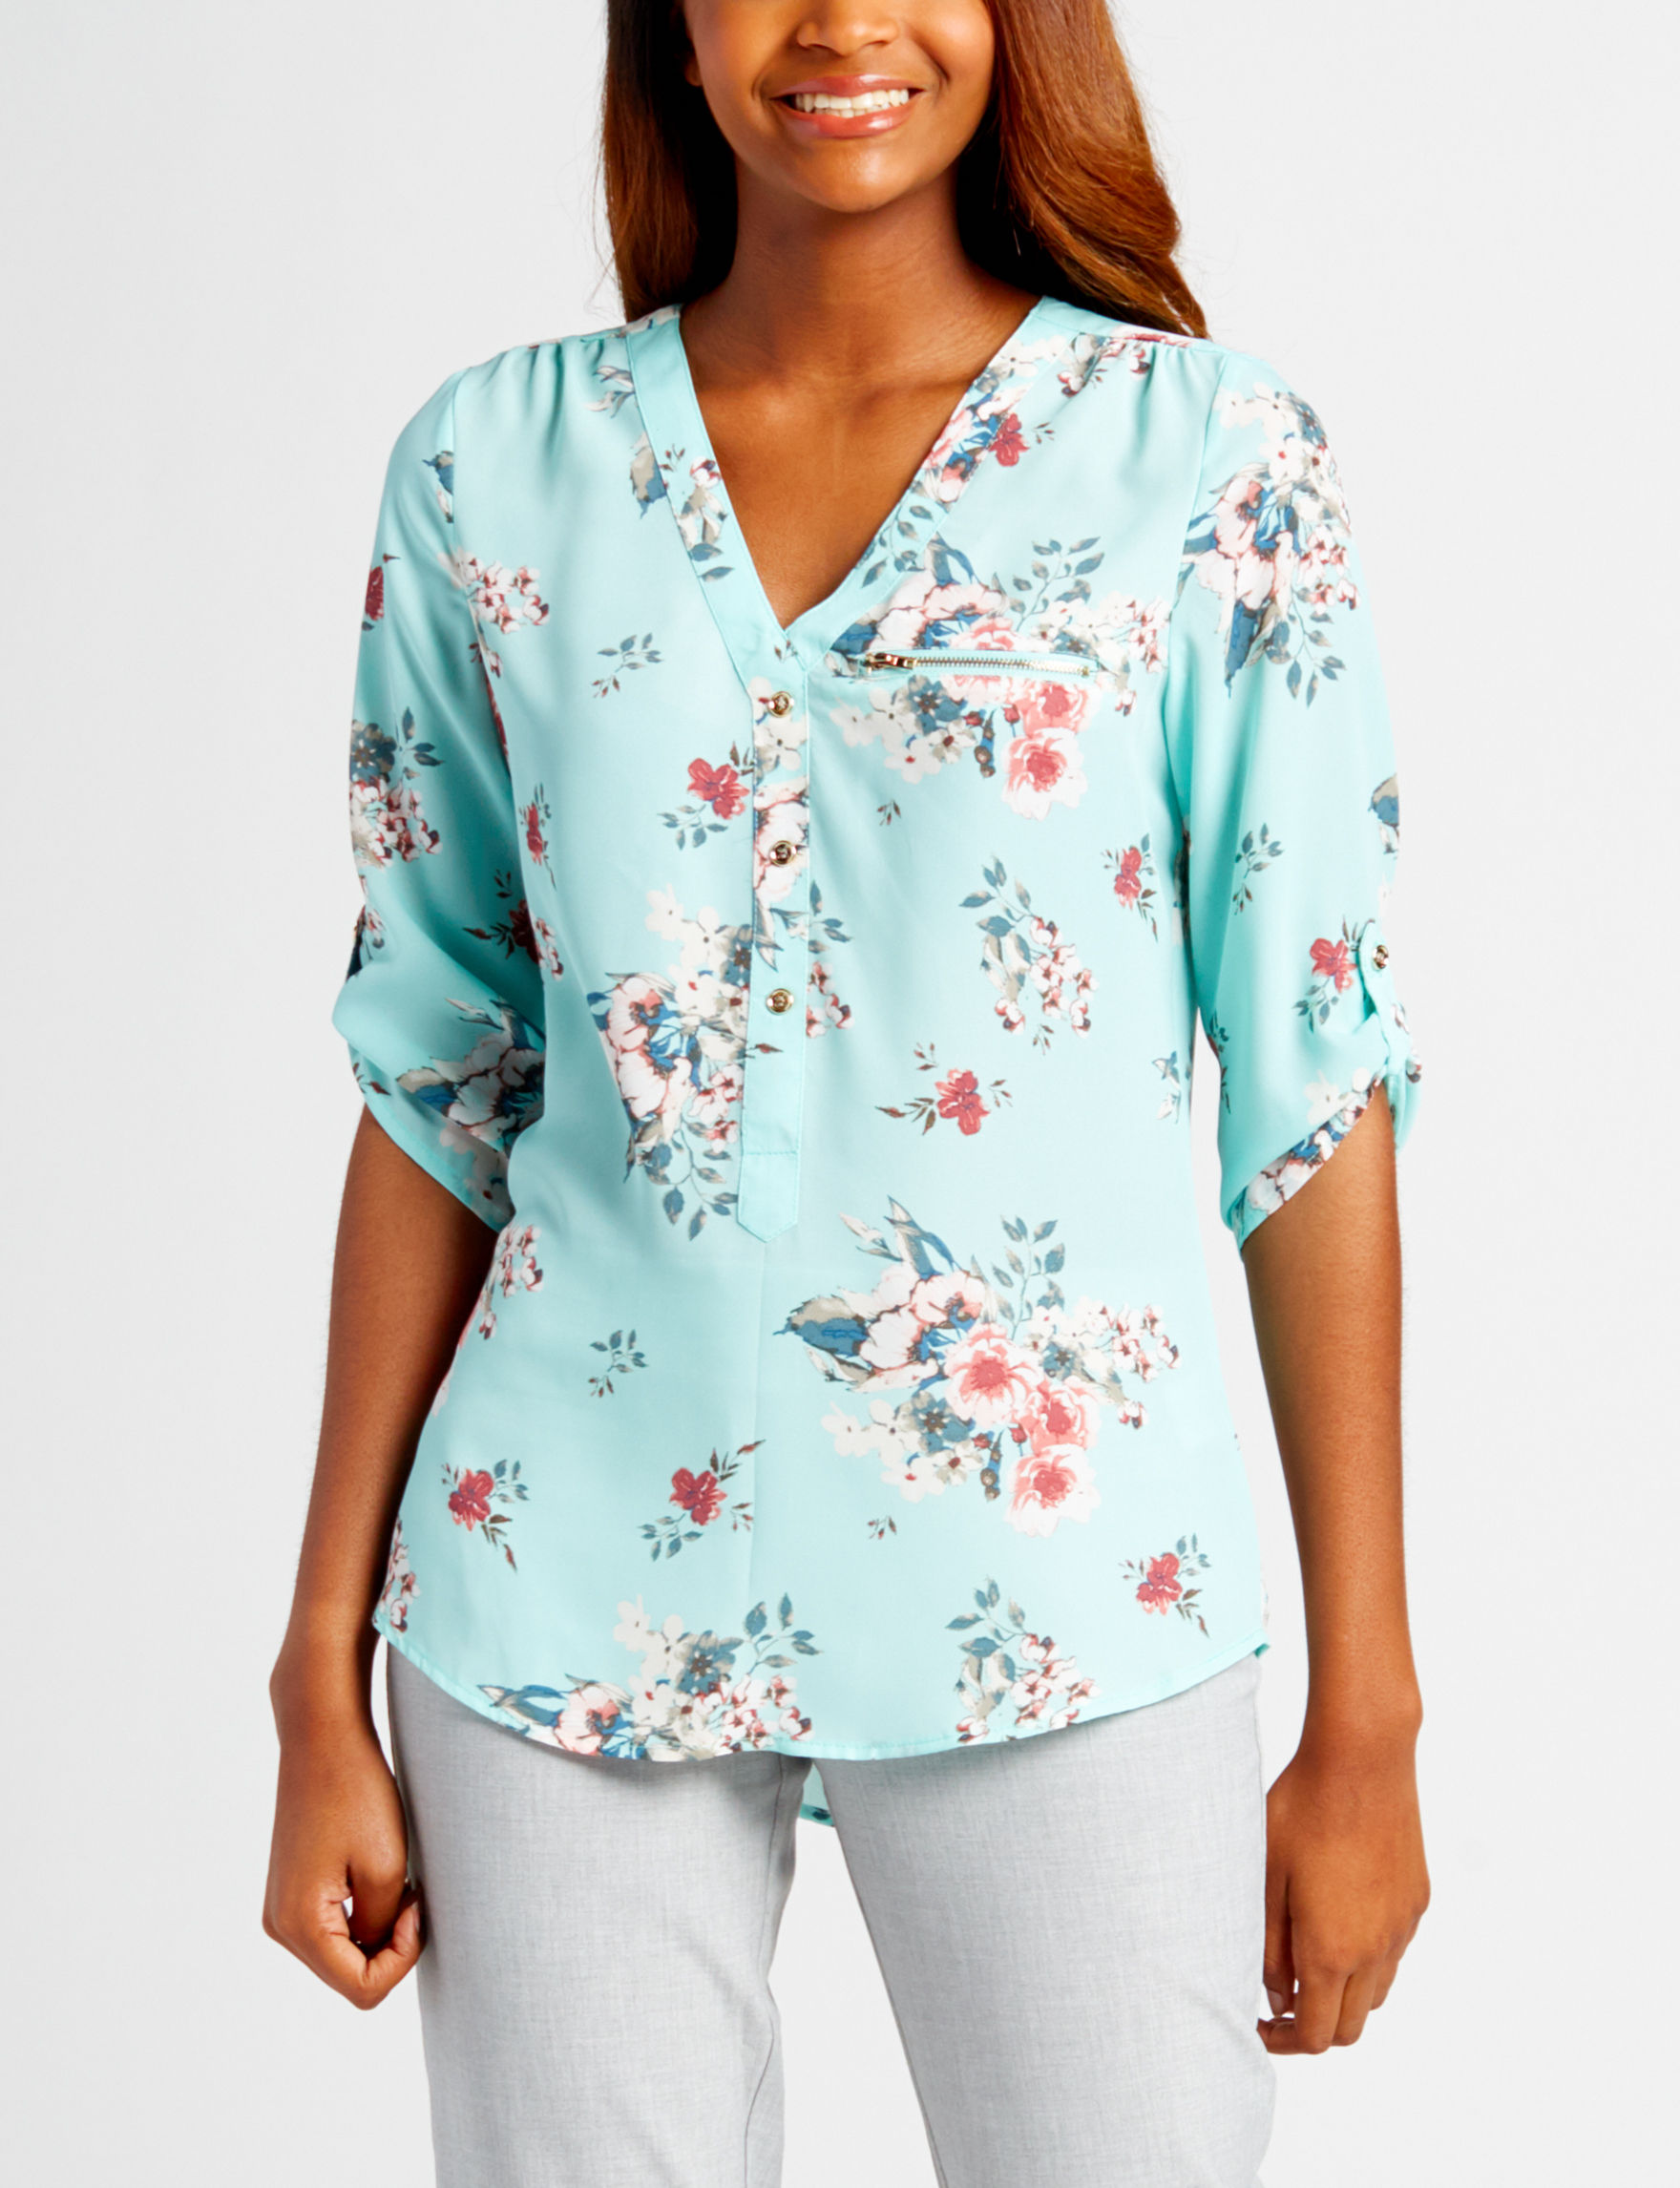 Wishful Park Teal Floral Shirts & Blouses